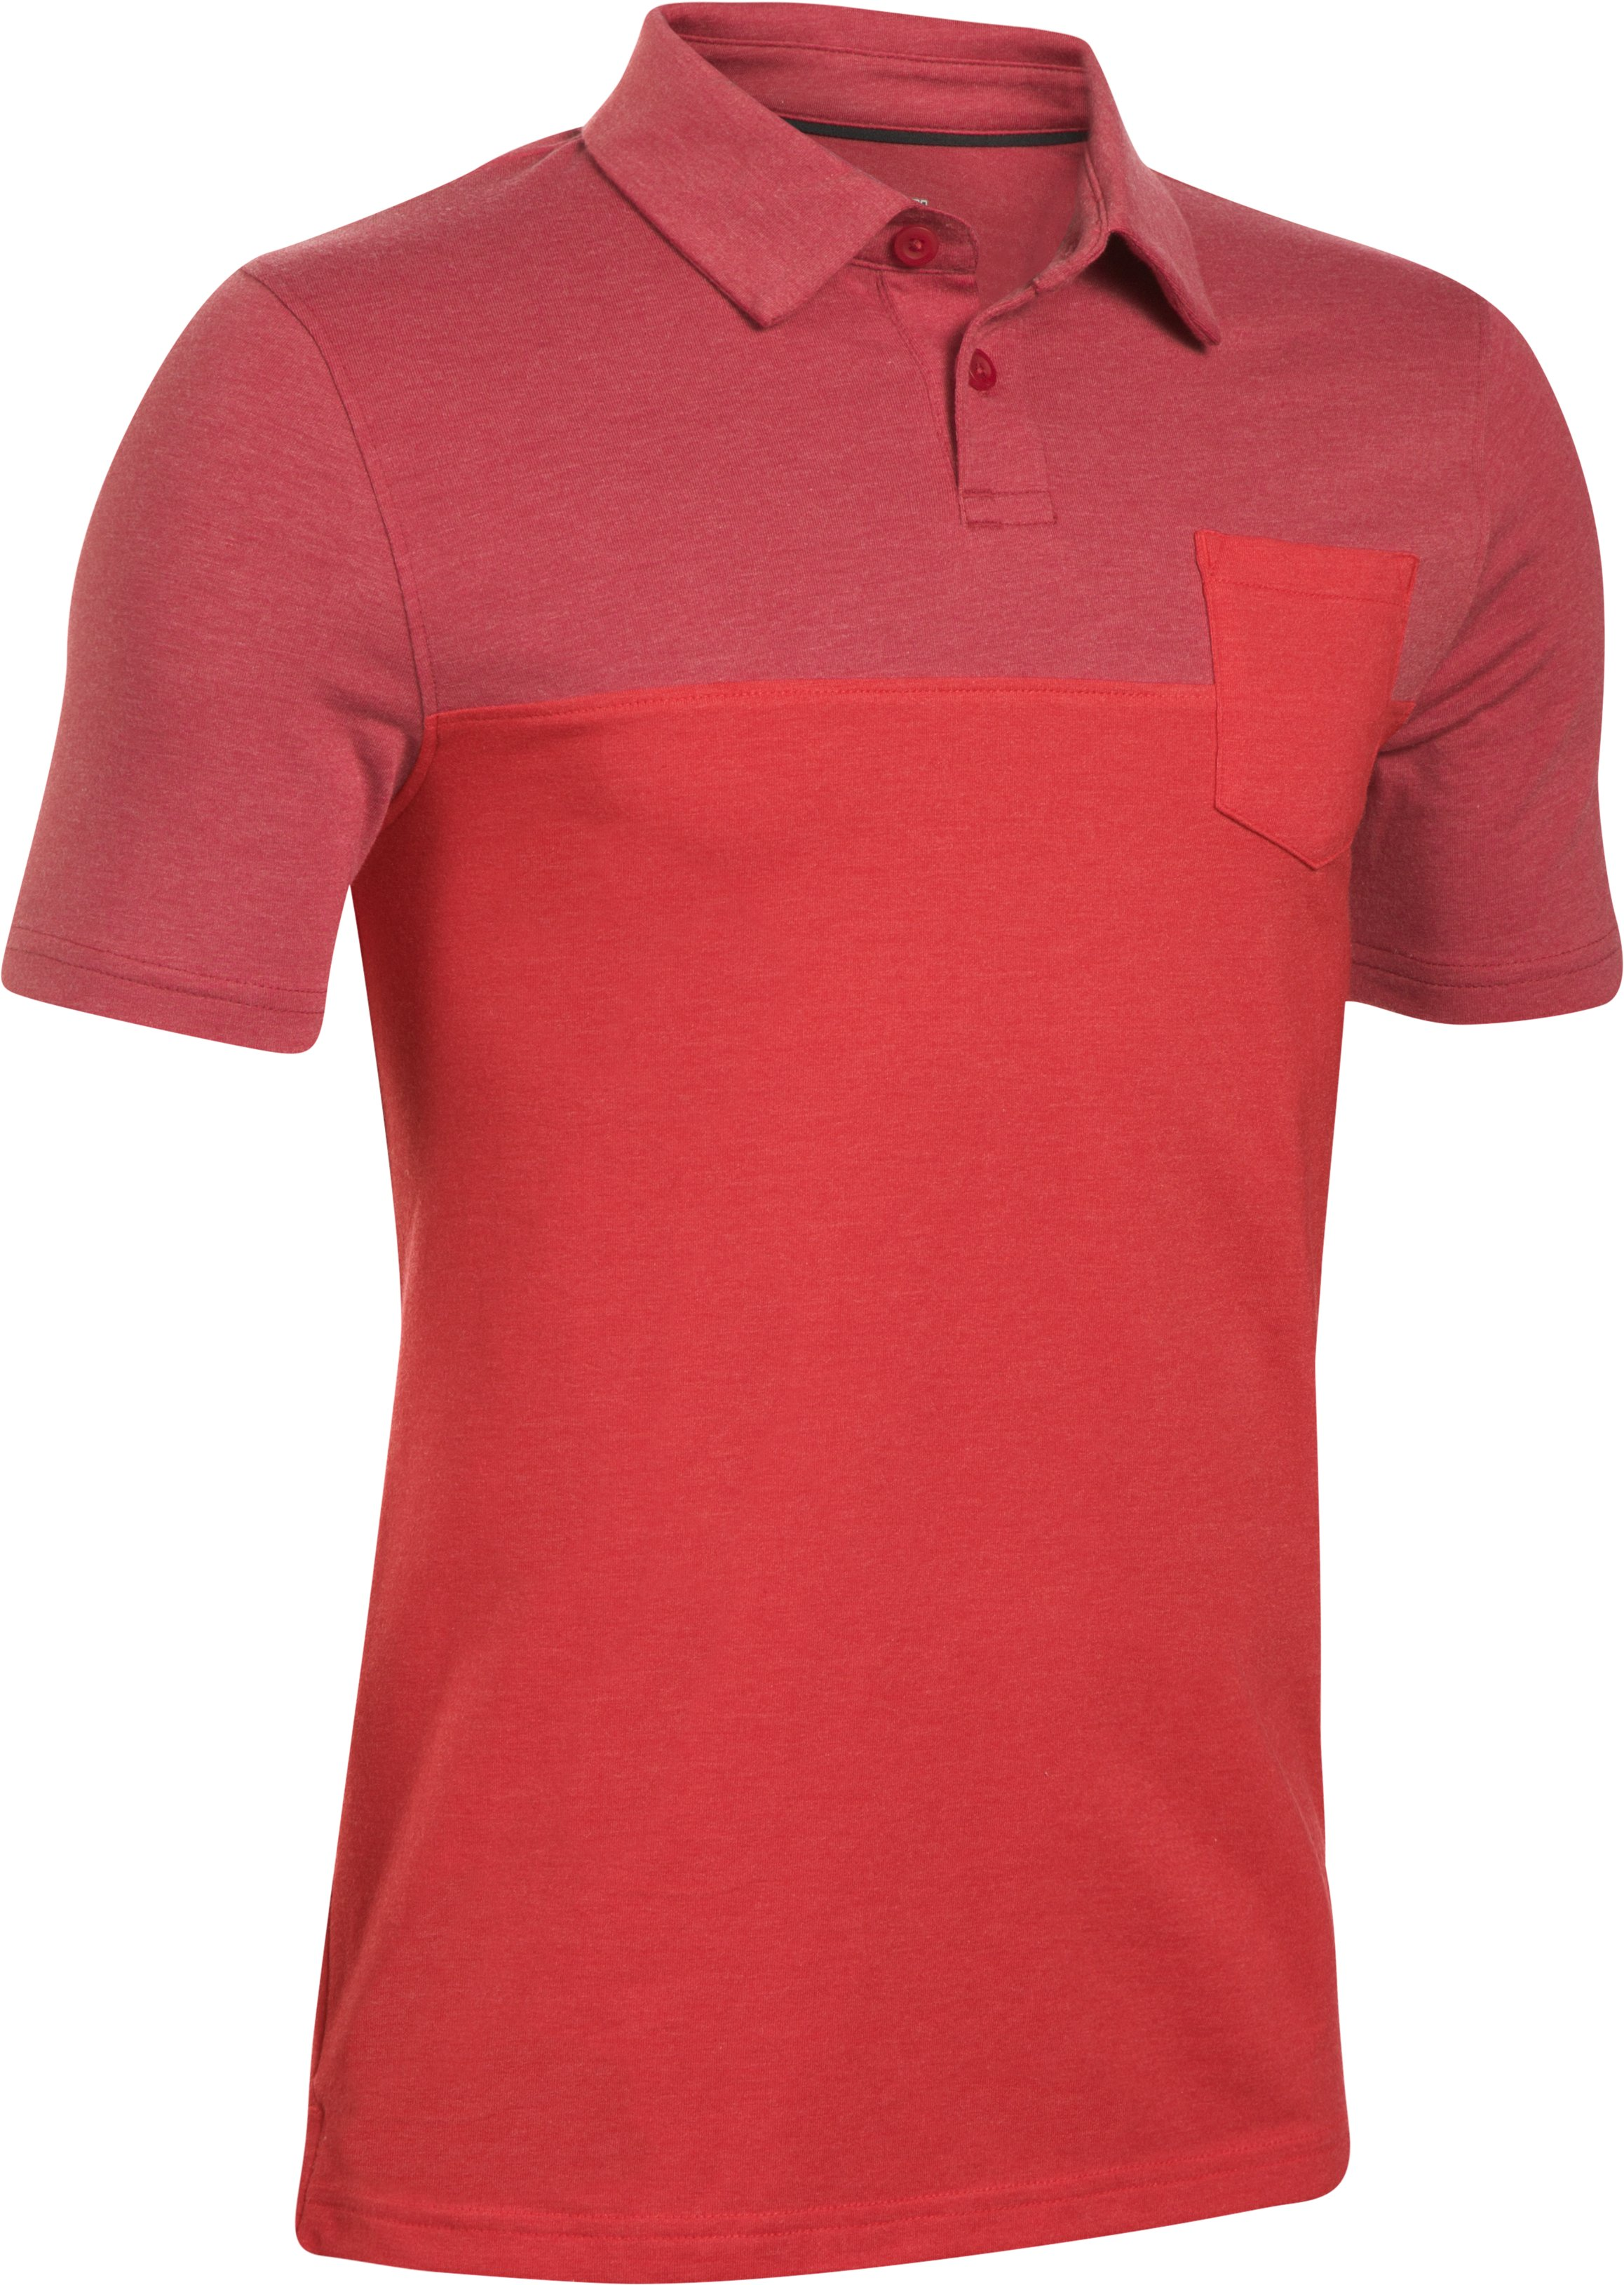 Boys' Charged Cotton® Blocked Polo, Red,